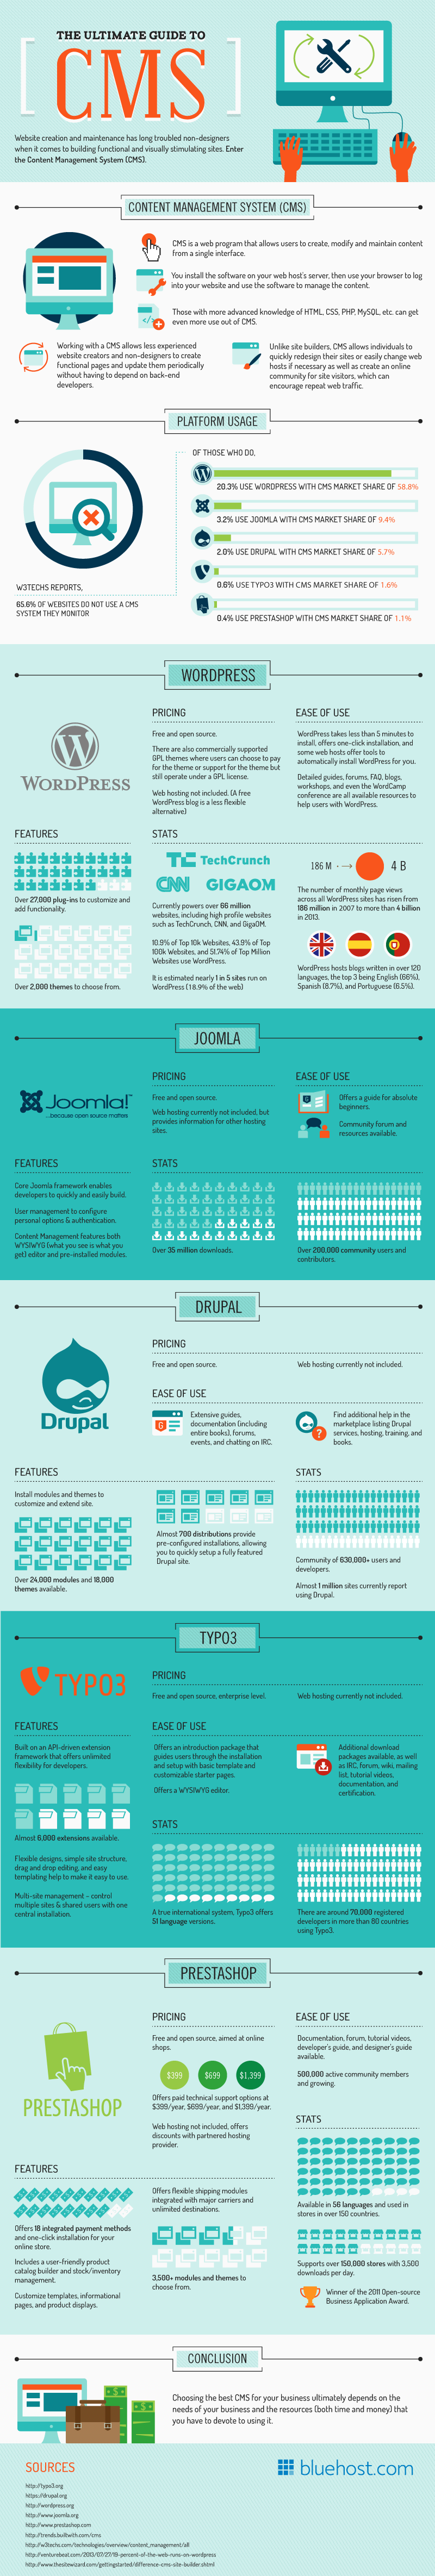 The Ultimate Guide To CMS - #Infographic